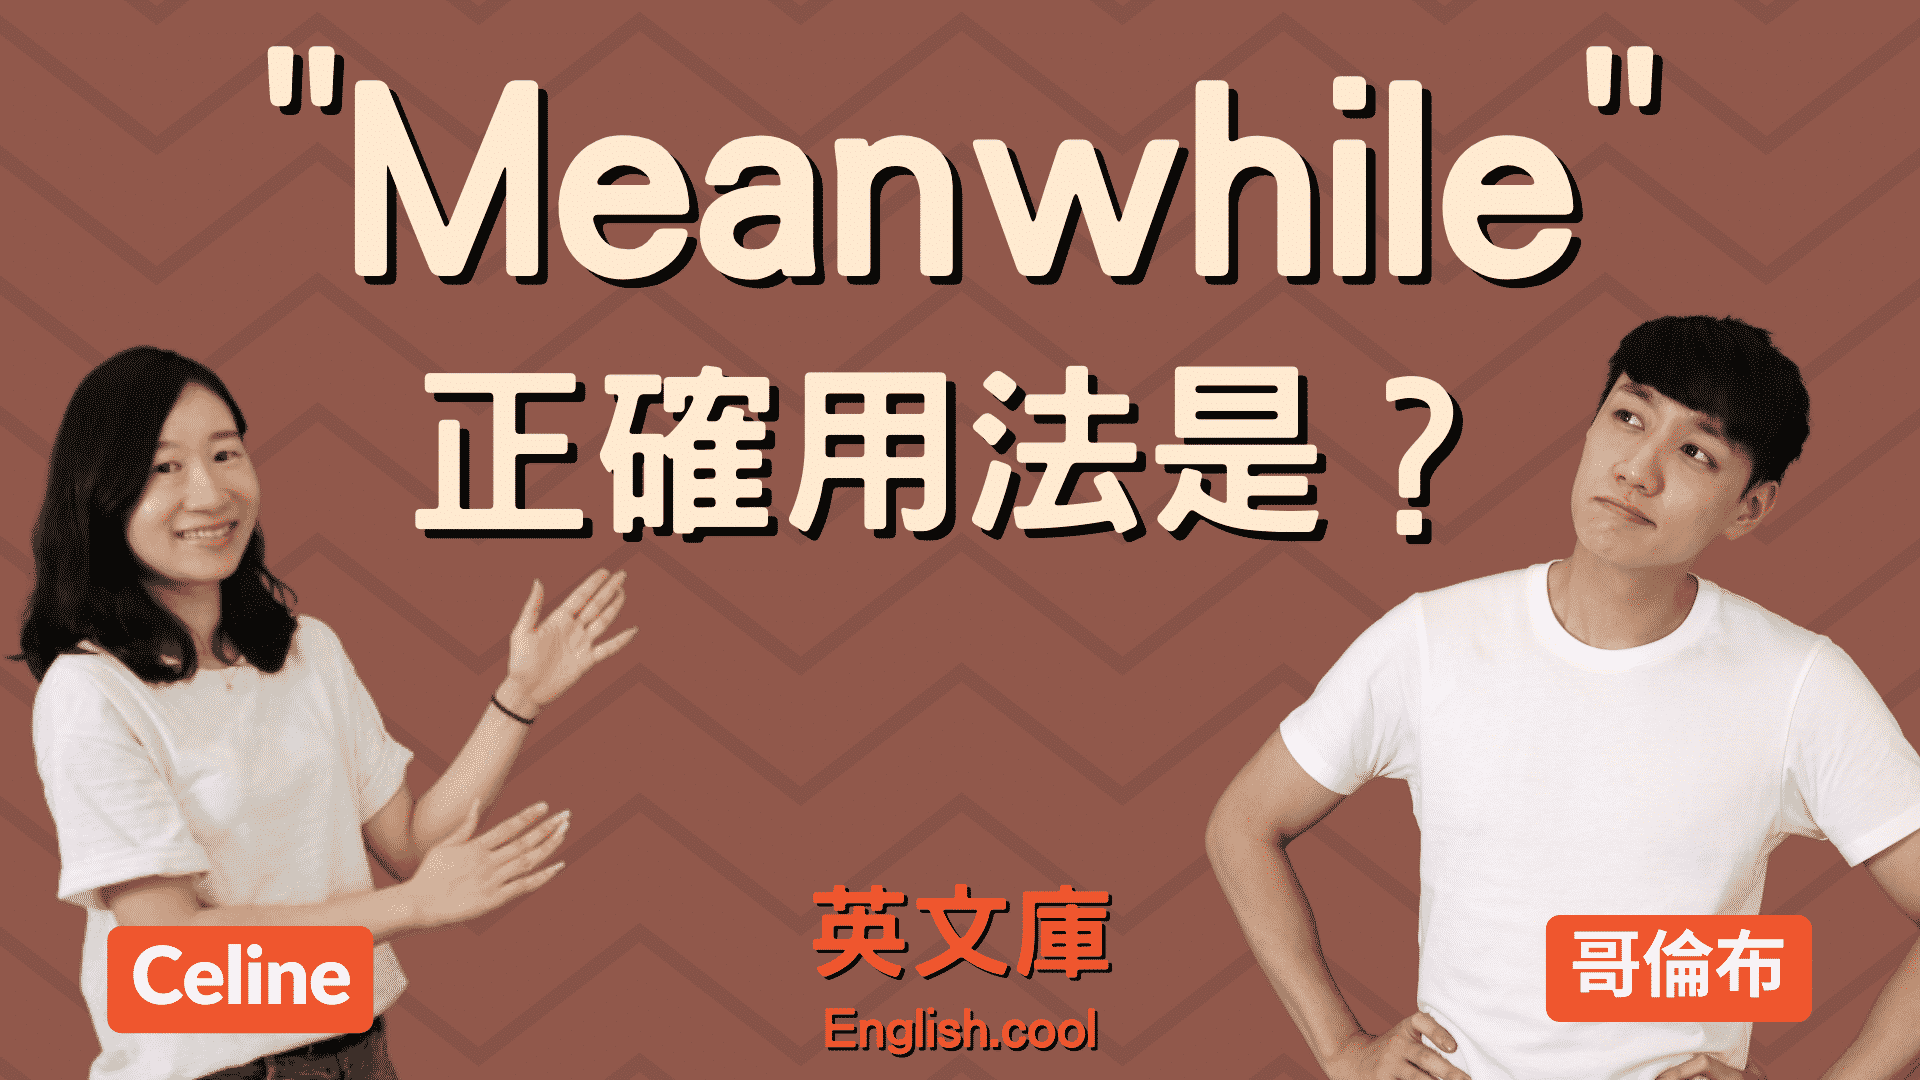 You are currently viewing 「meanwhile」正確用法是?來看例句!